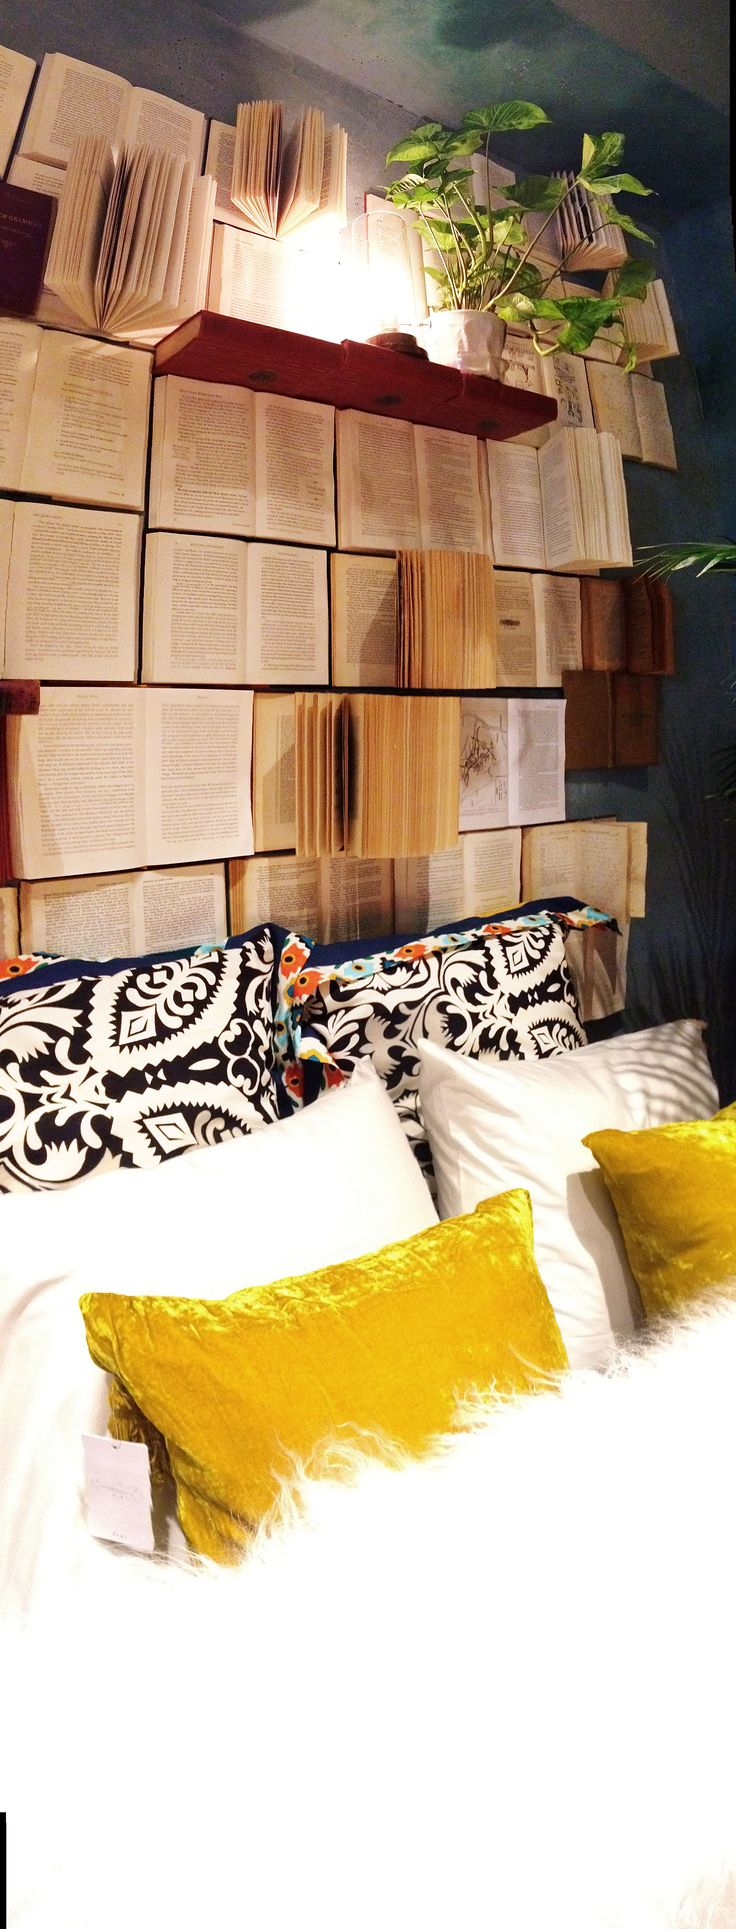 Book Wall Anthropologie display. Would so love to do this in a kids room. #anthrofave #juvenilehalldesign